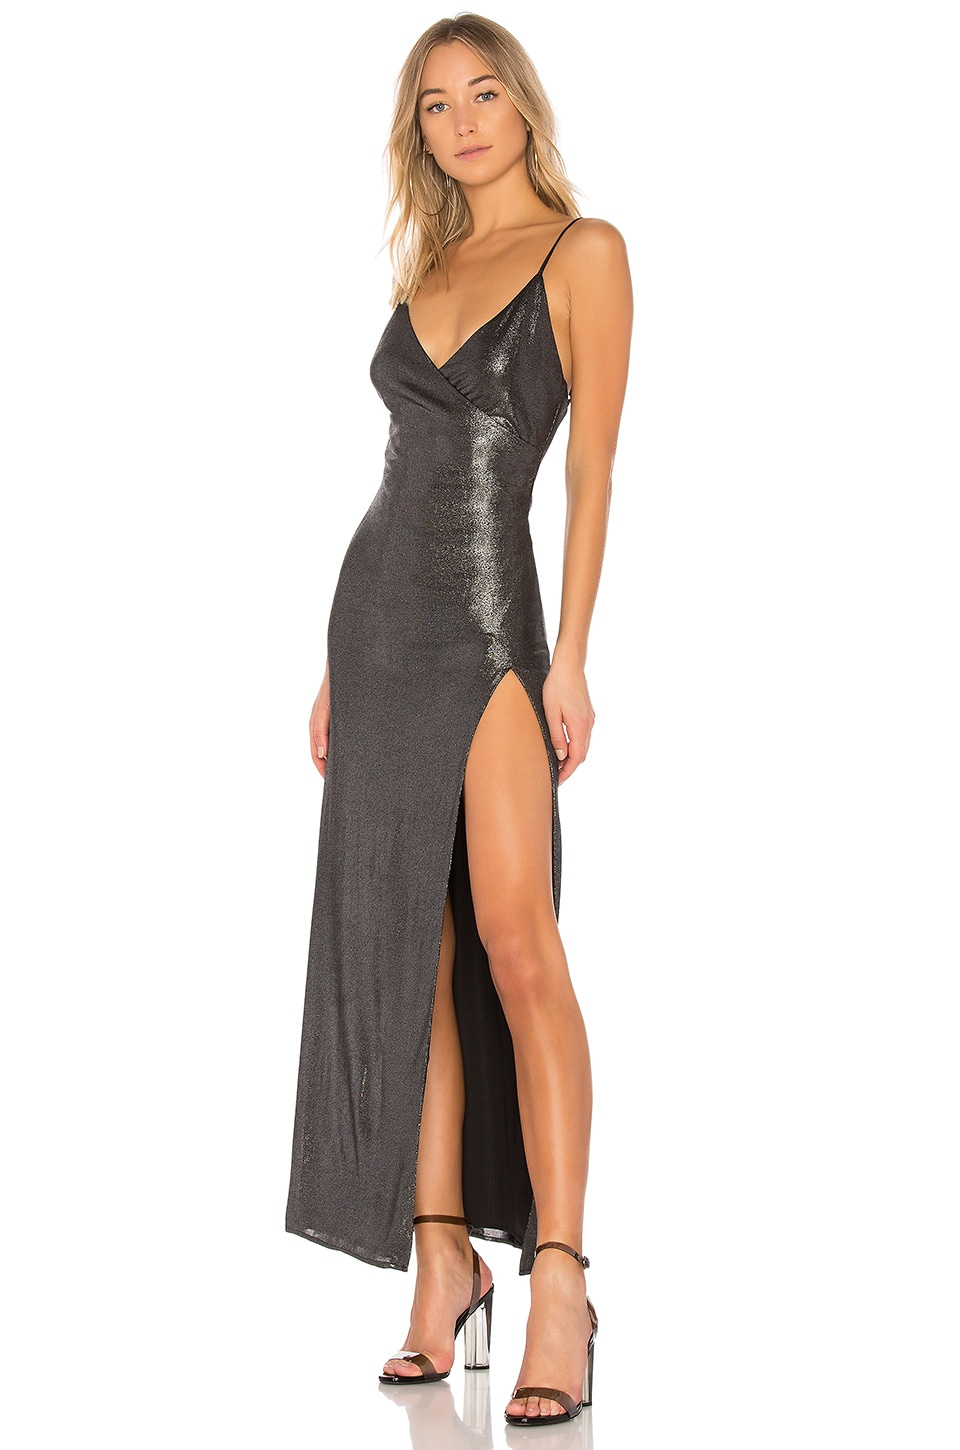 h:ours x REVOLVE Rey Dress in Gunmetal